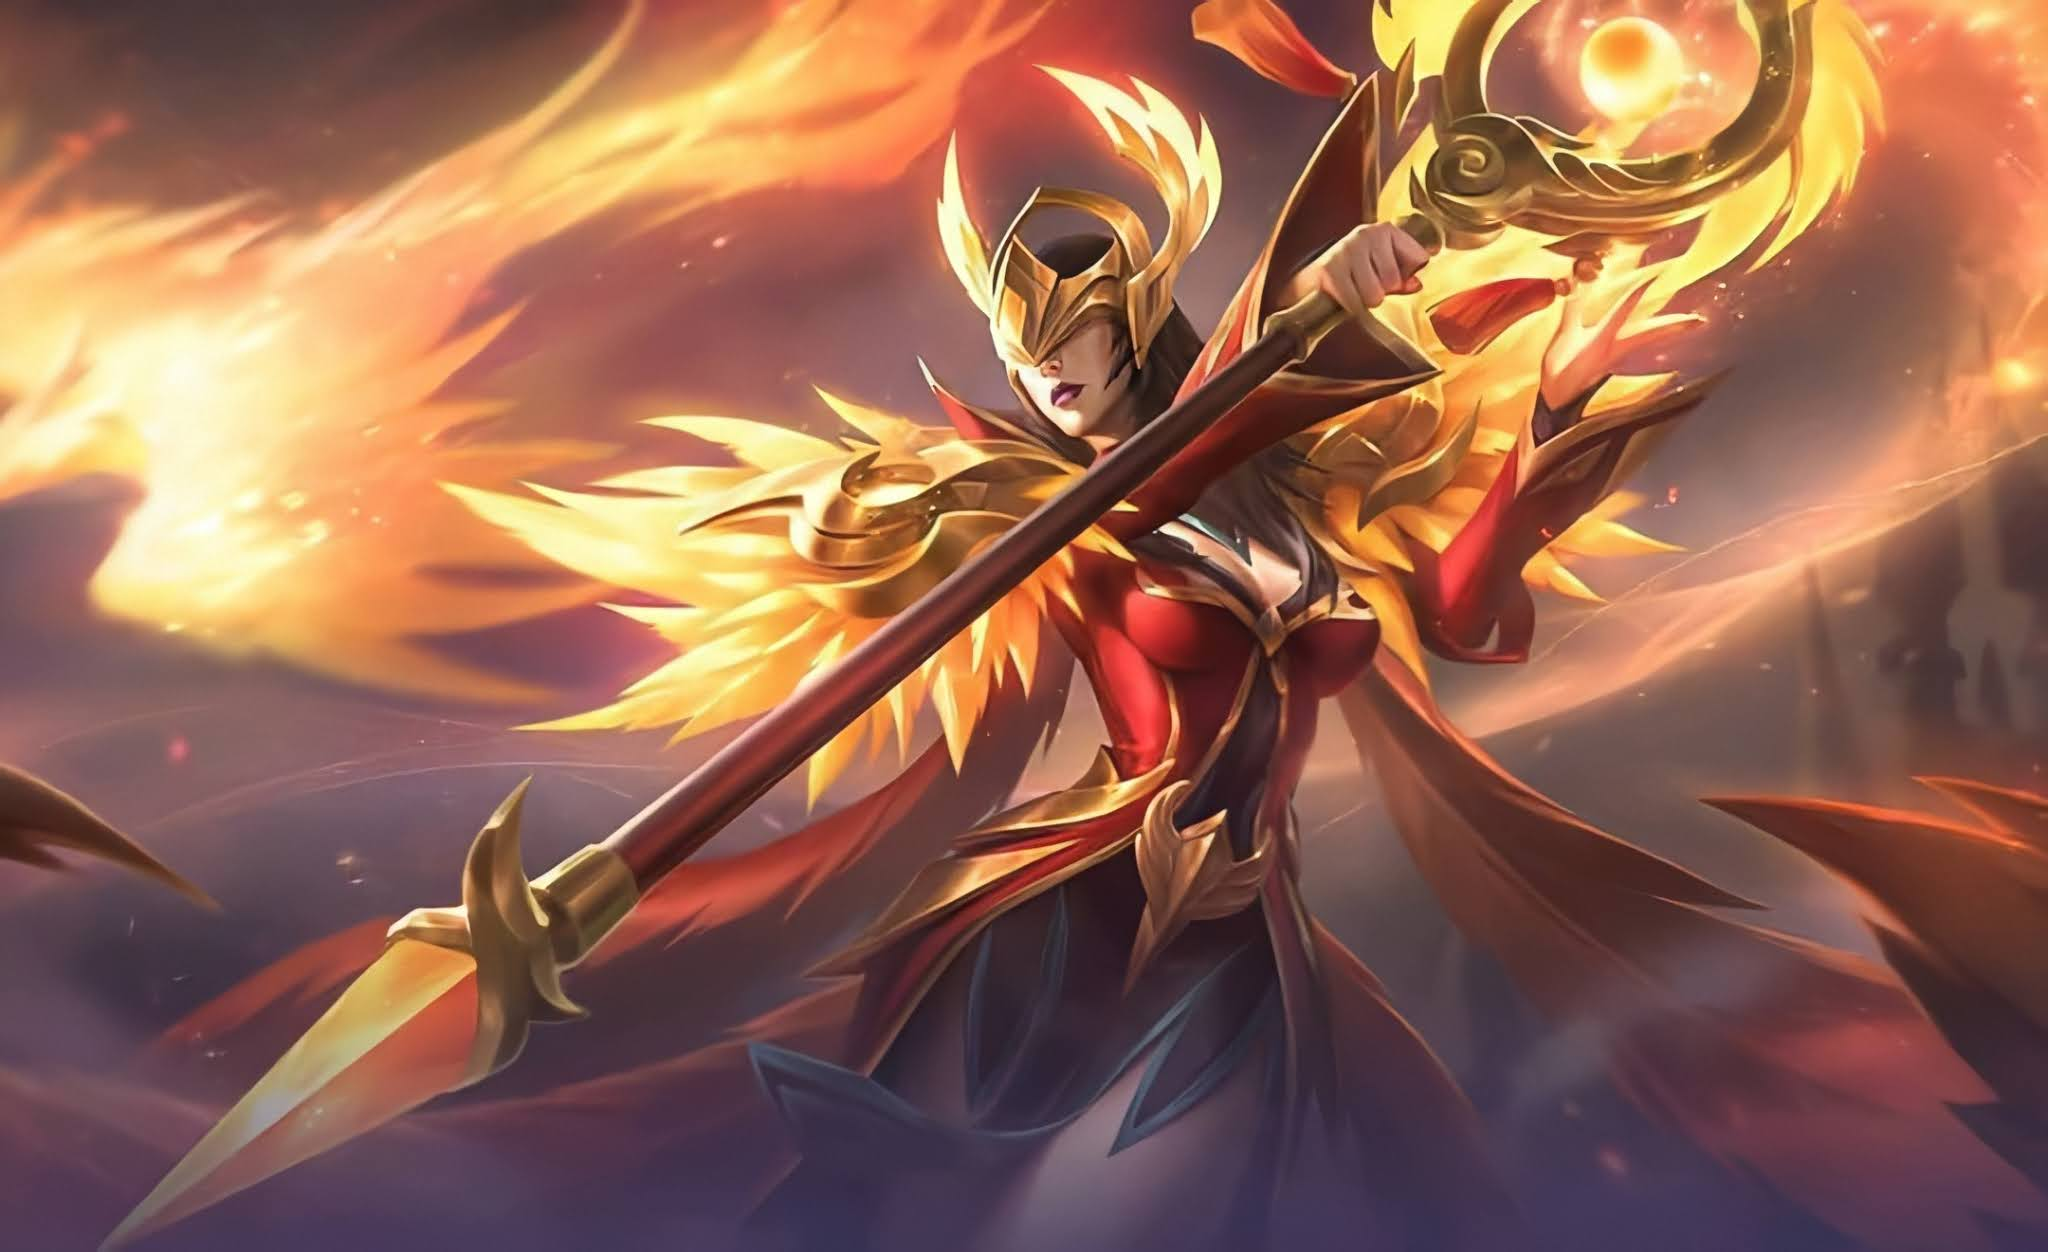 Mobile Legends Bang Bang Wallpaper Gallery Do you think this skin is worthy for the diamonds you will spend? mobile legends bang bang wallpaper gallery